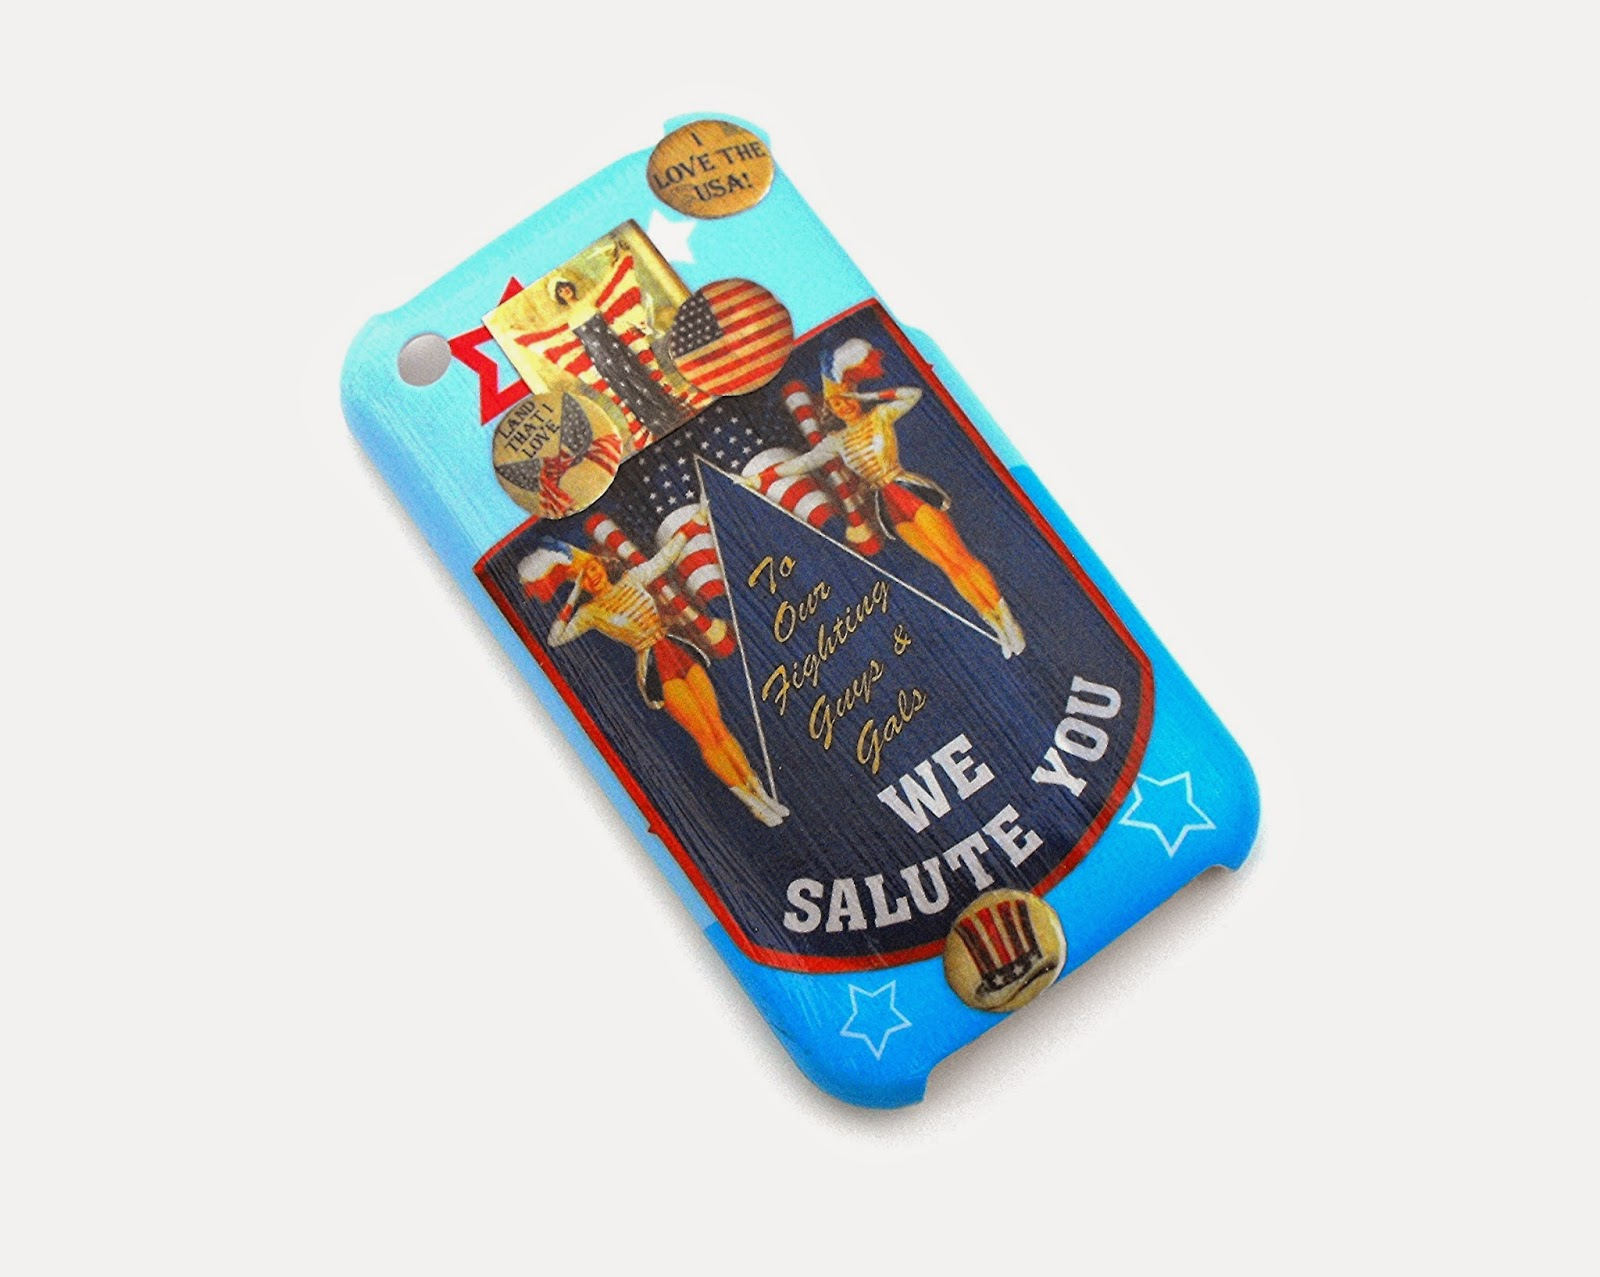 https://www.etsy.com/listing/171158844/patriotic-pin-up-iphone-3-case-retro?ref=shop_home_active_13